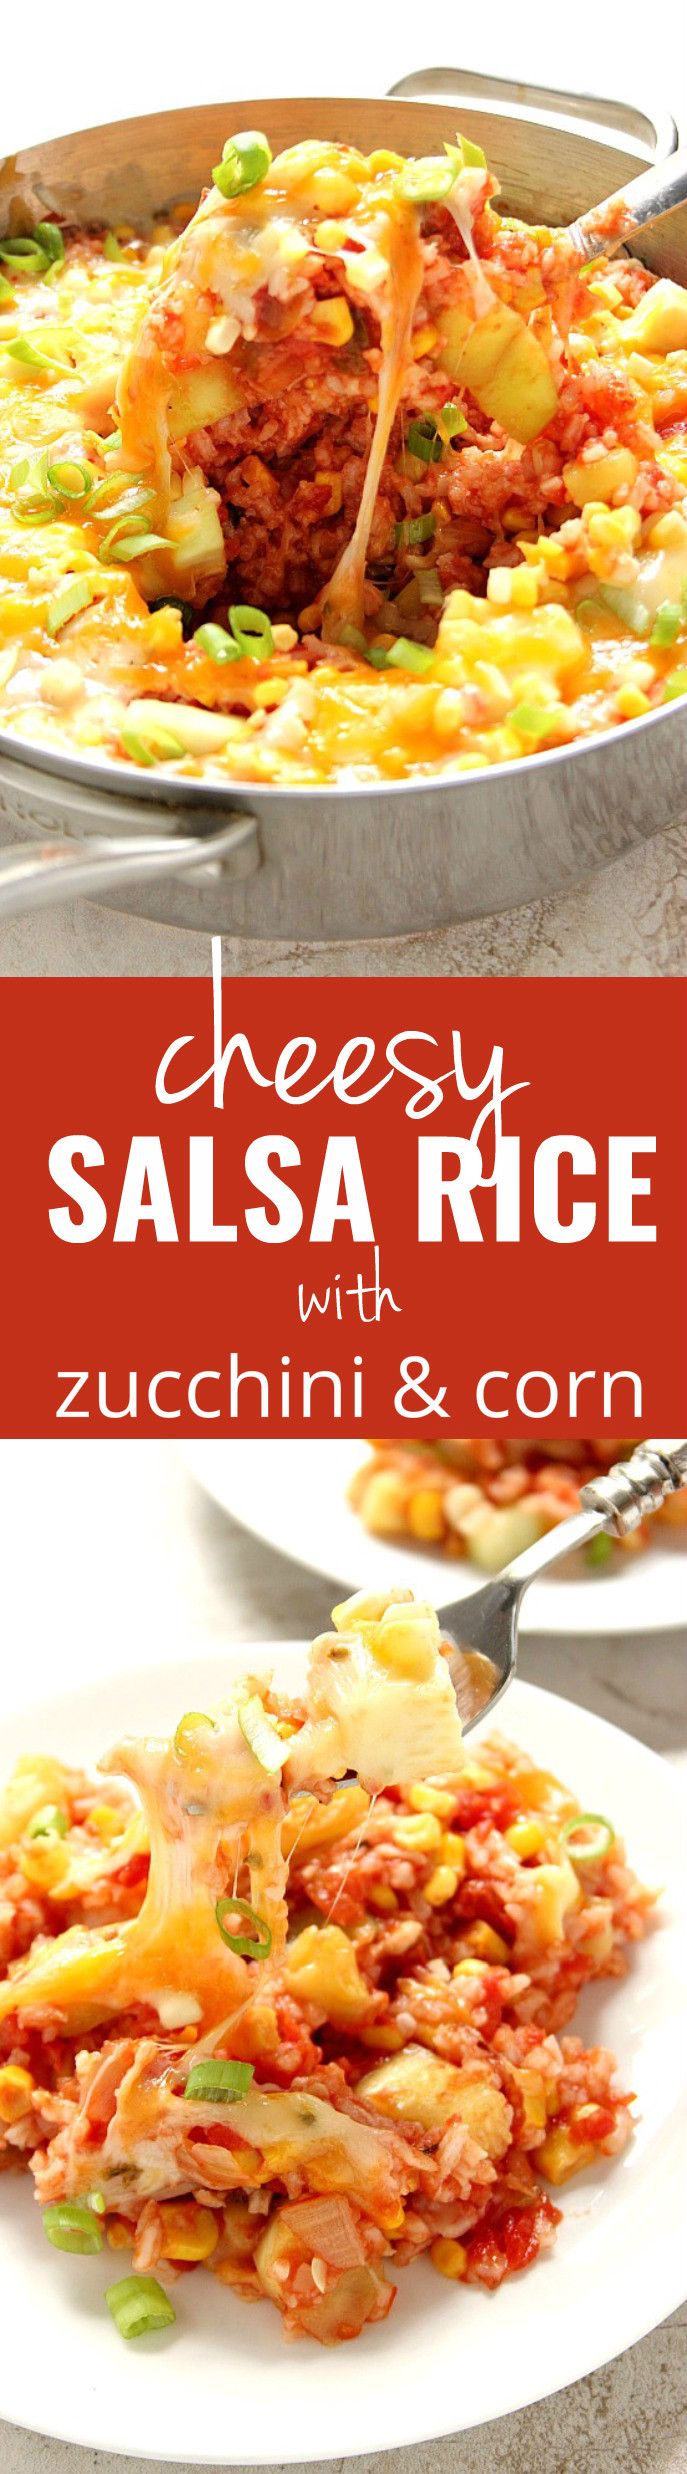 Cheesy Salsa Rice with Zucchini and Corn | Recipe ...